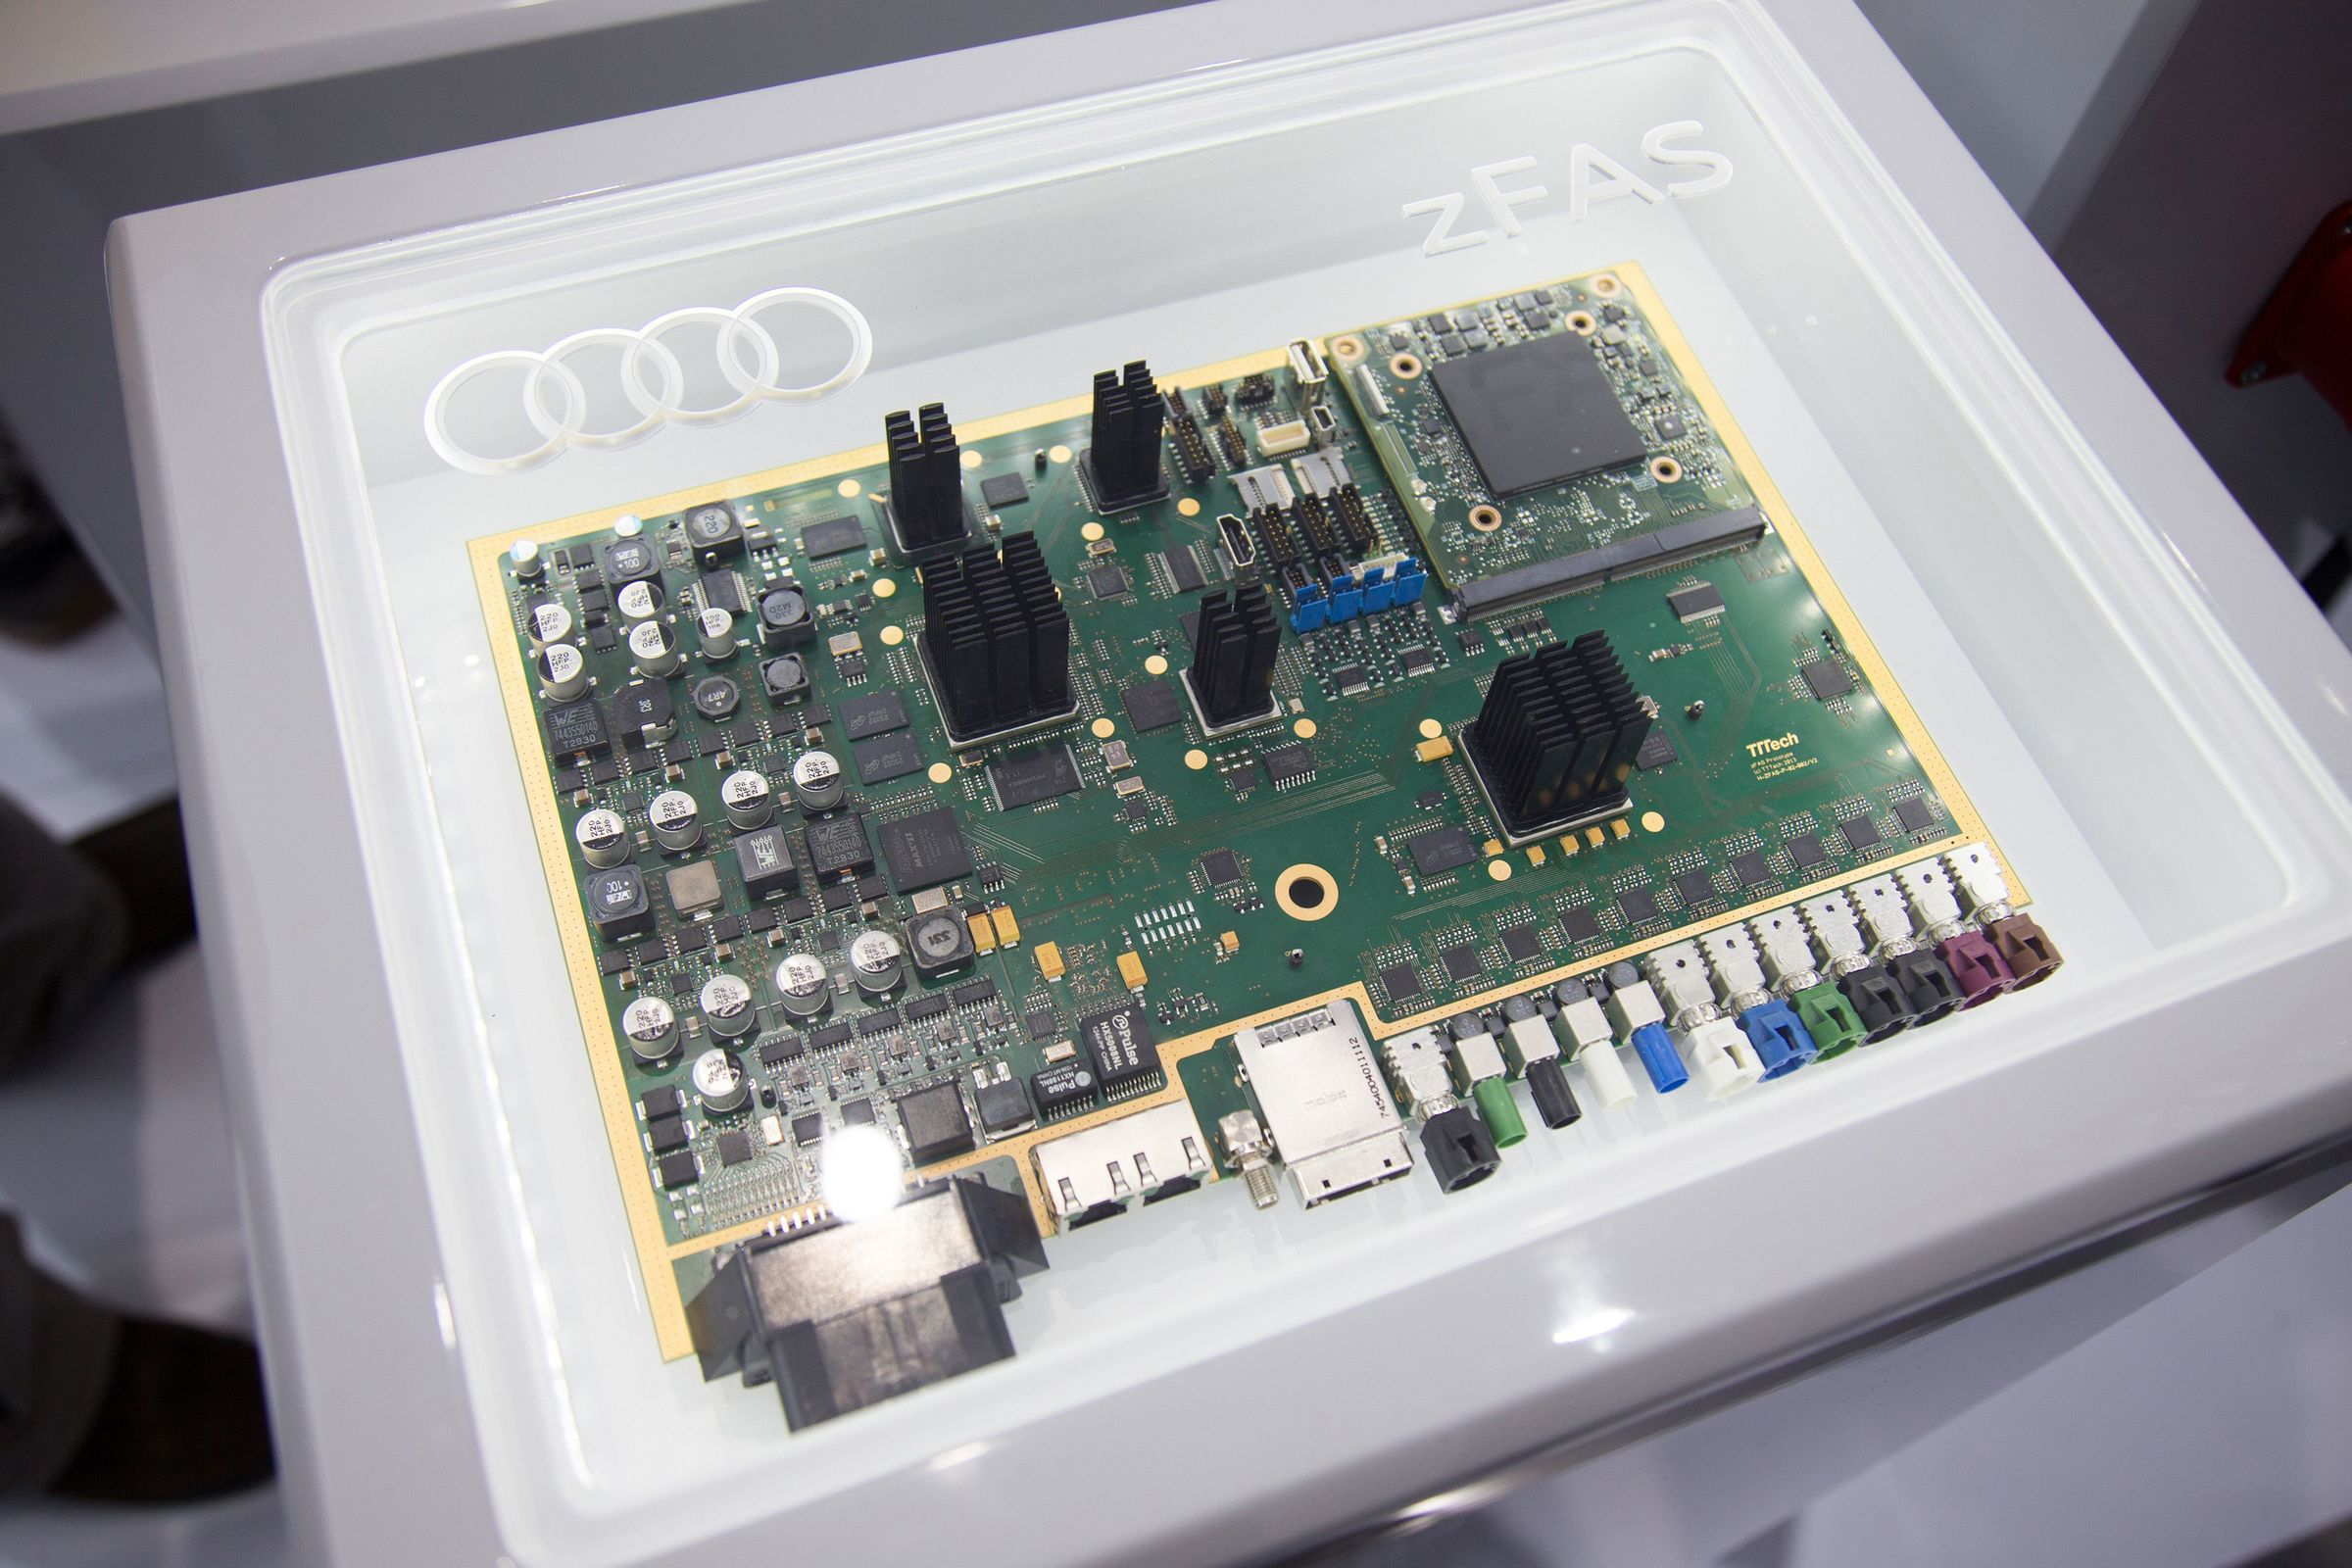 Driver Assistance Systems Audi Mediacenter Car Parking Guard Circuit Using Infrared Sensor Explanation Central Controller